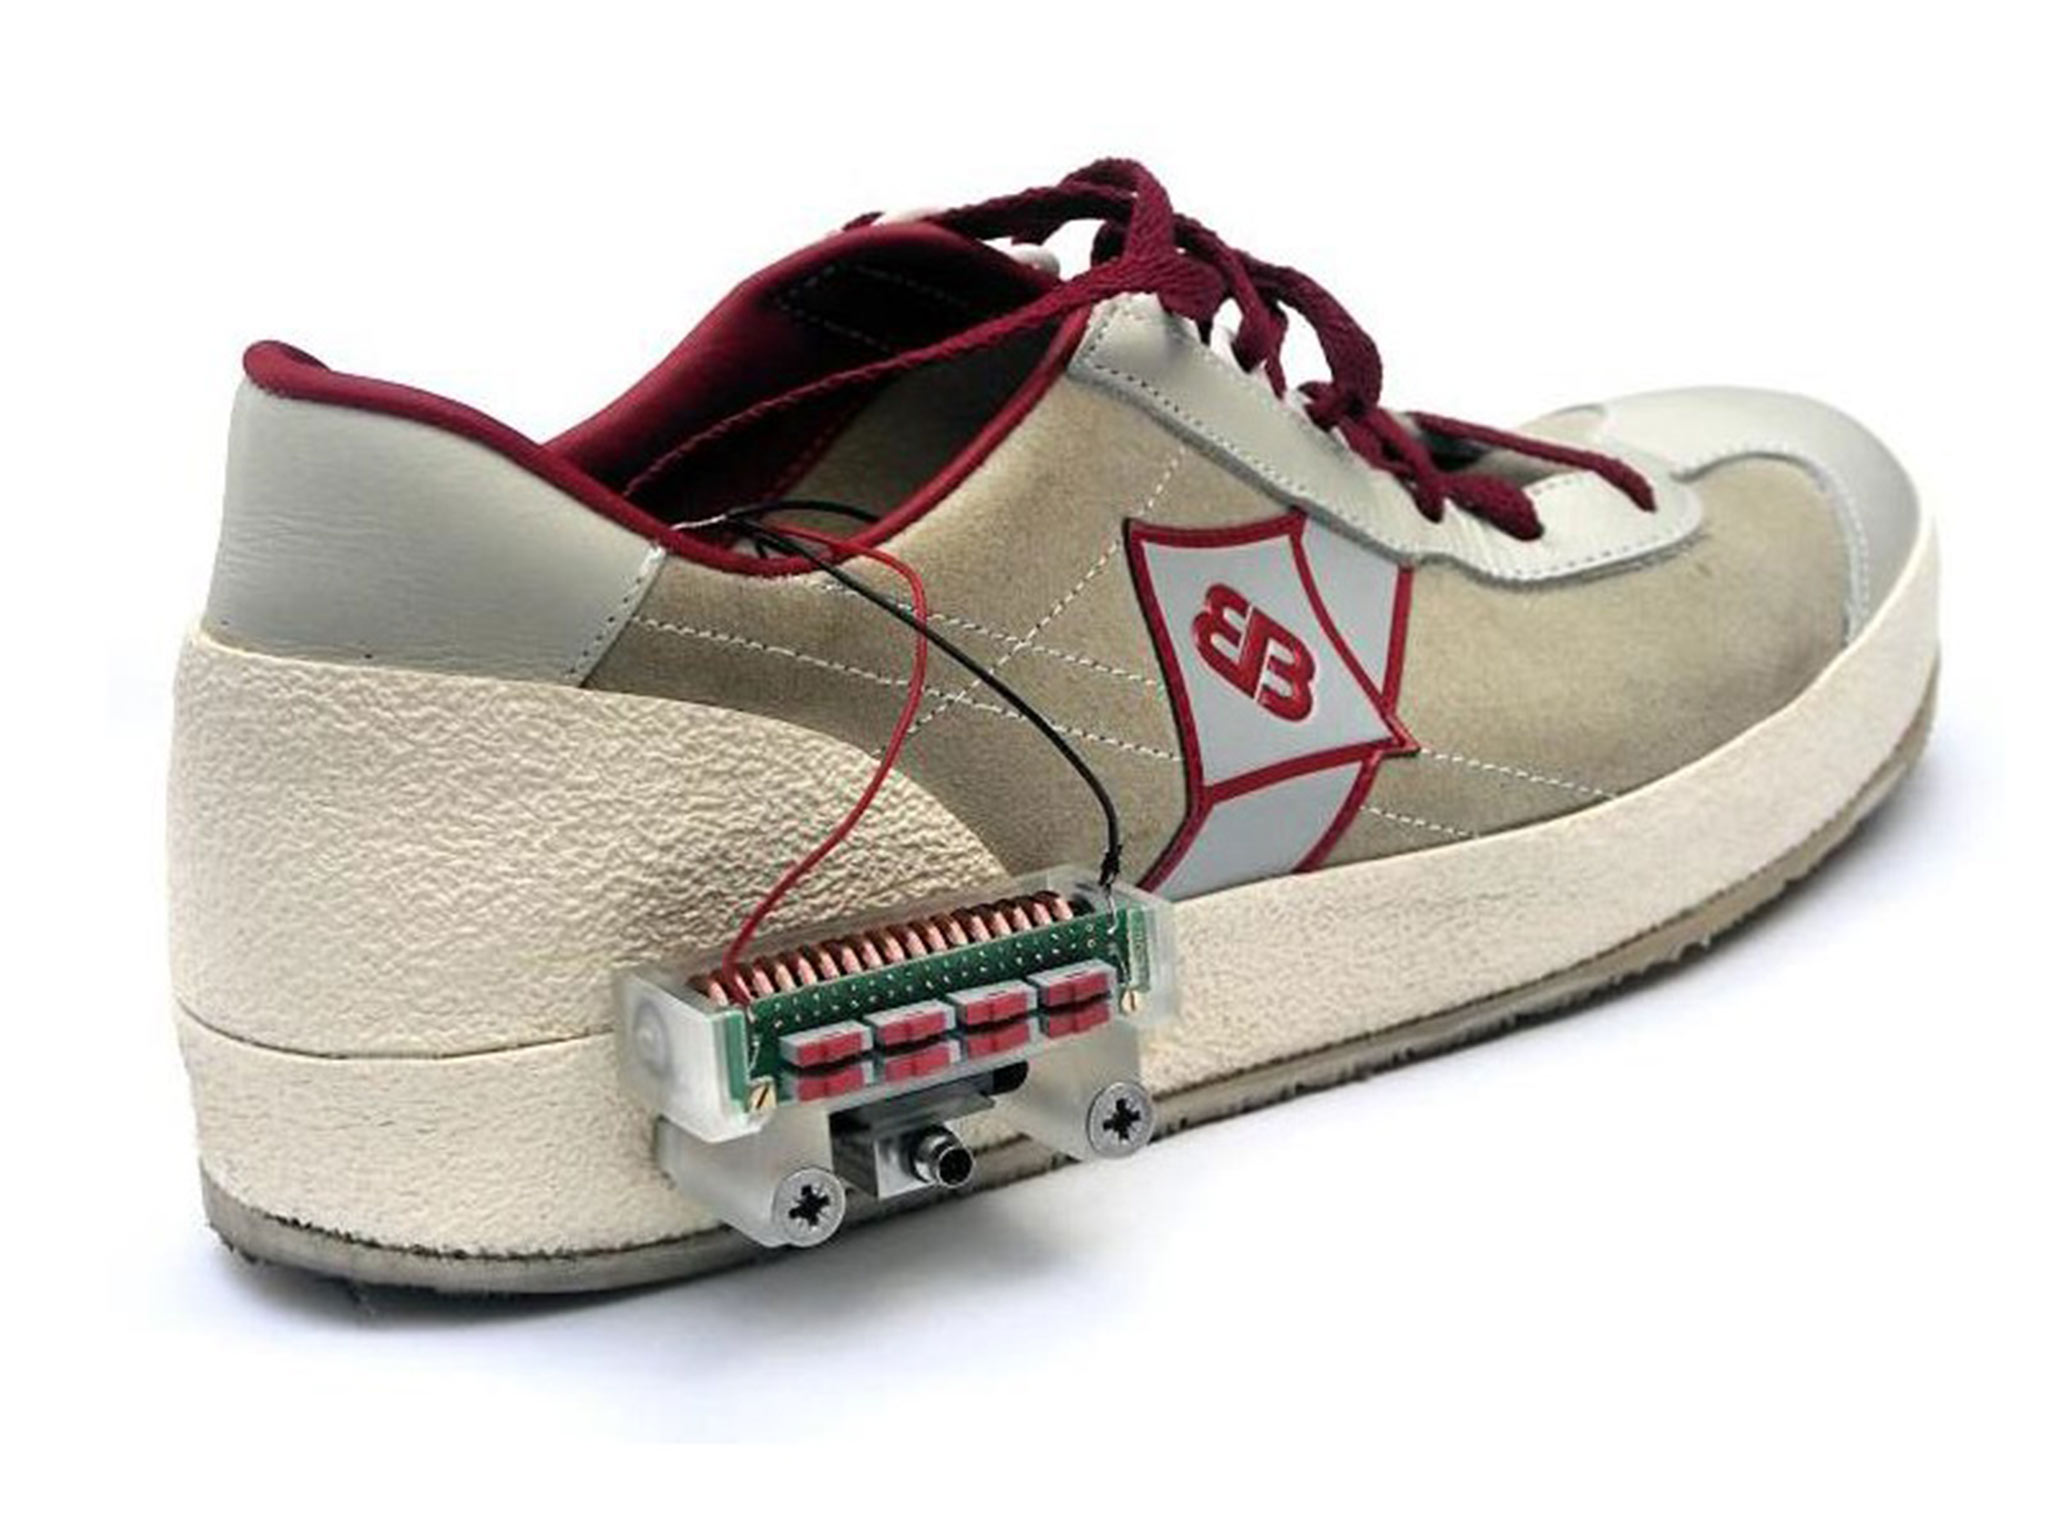 Shoe Power! Energy Harvesting from Human Motion